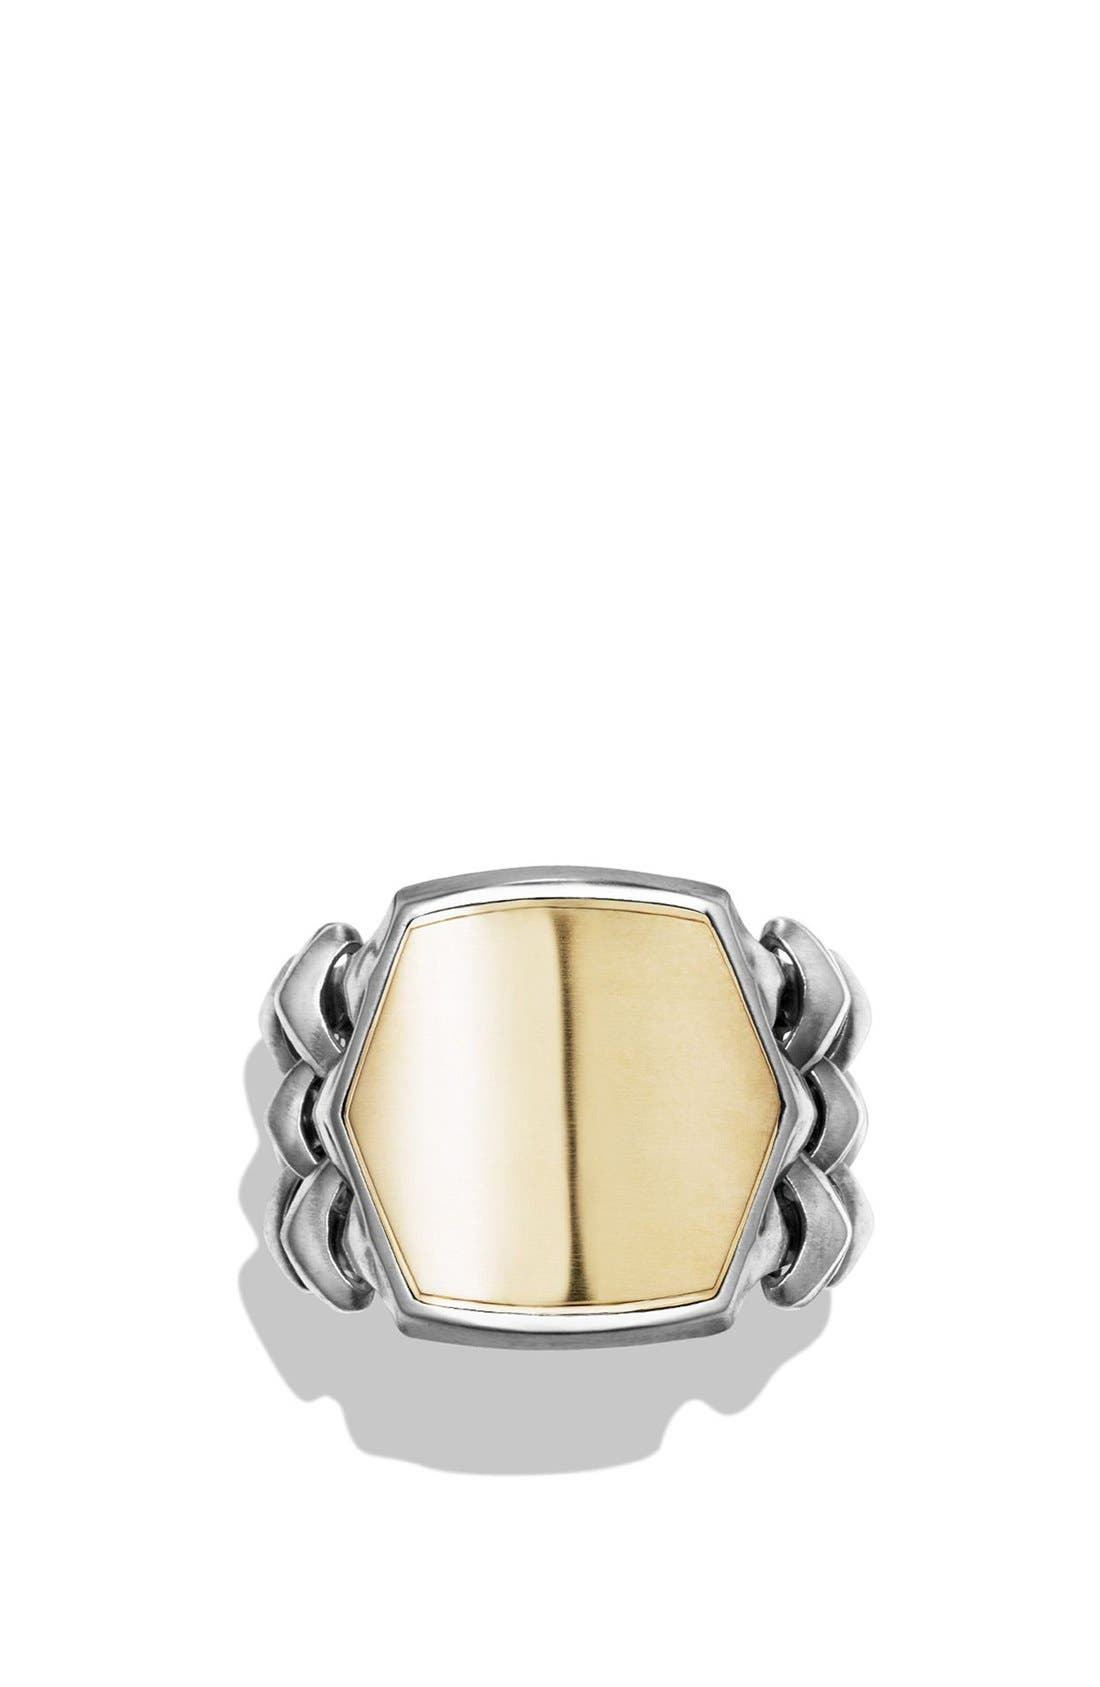 'Armory' Signet Ring,                             Alternate thumbnail 2, color,                             041